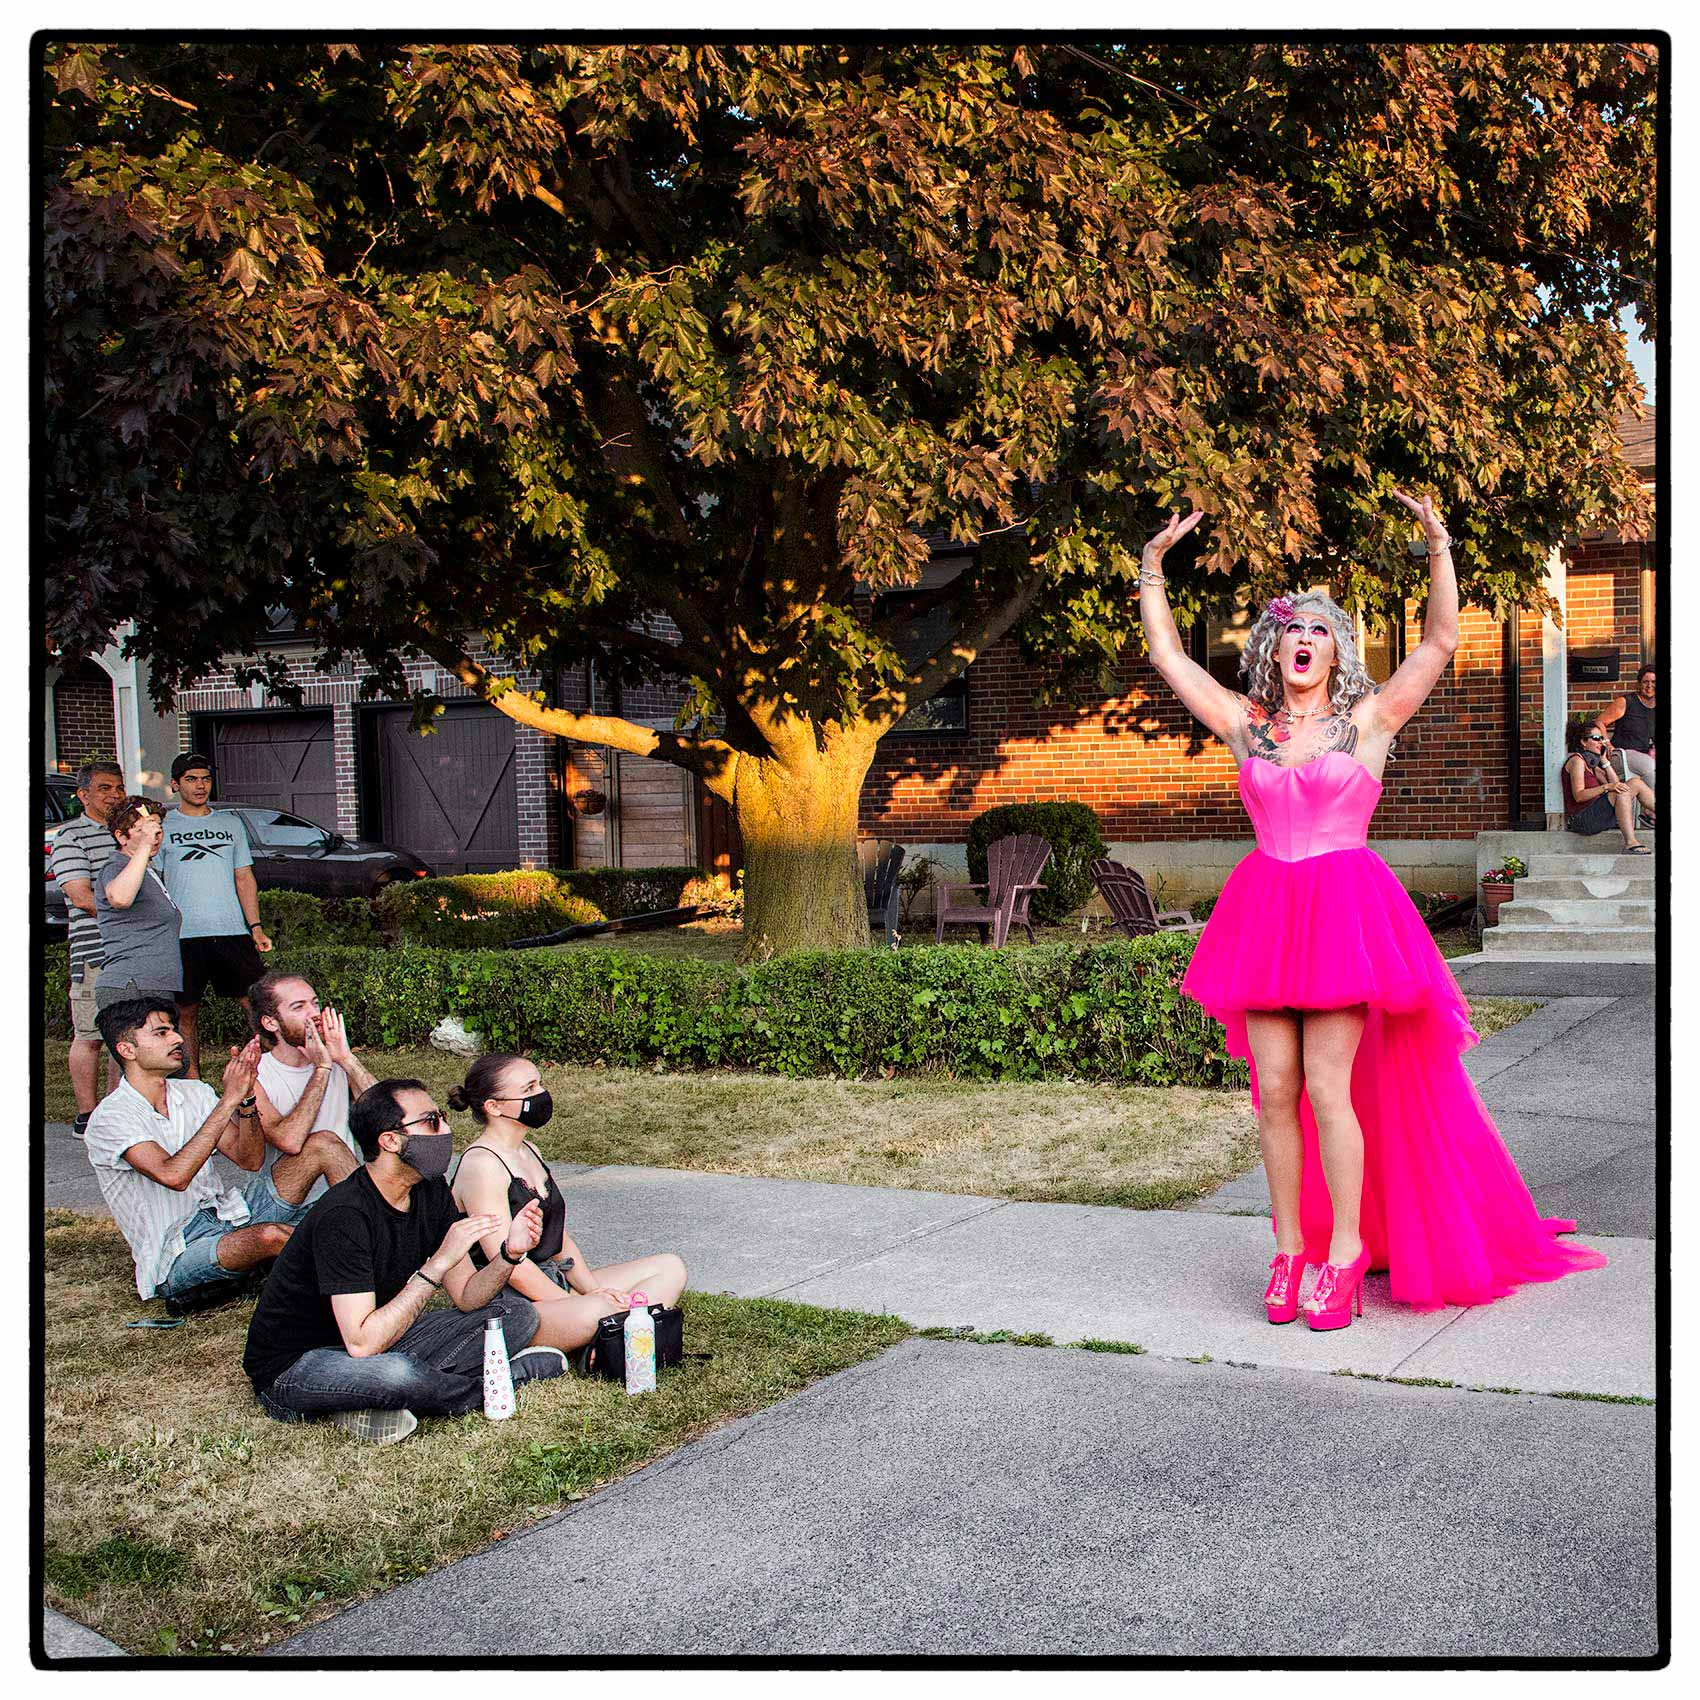 A drag queen performing outside for her neighbors in north york